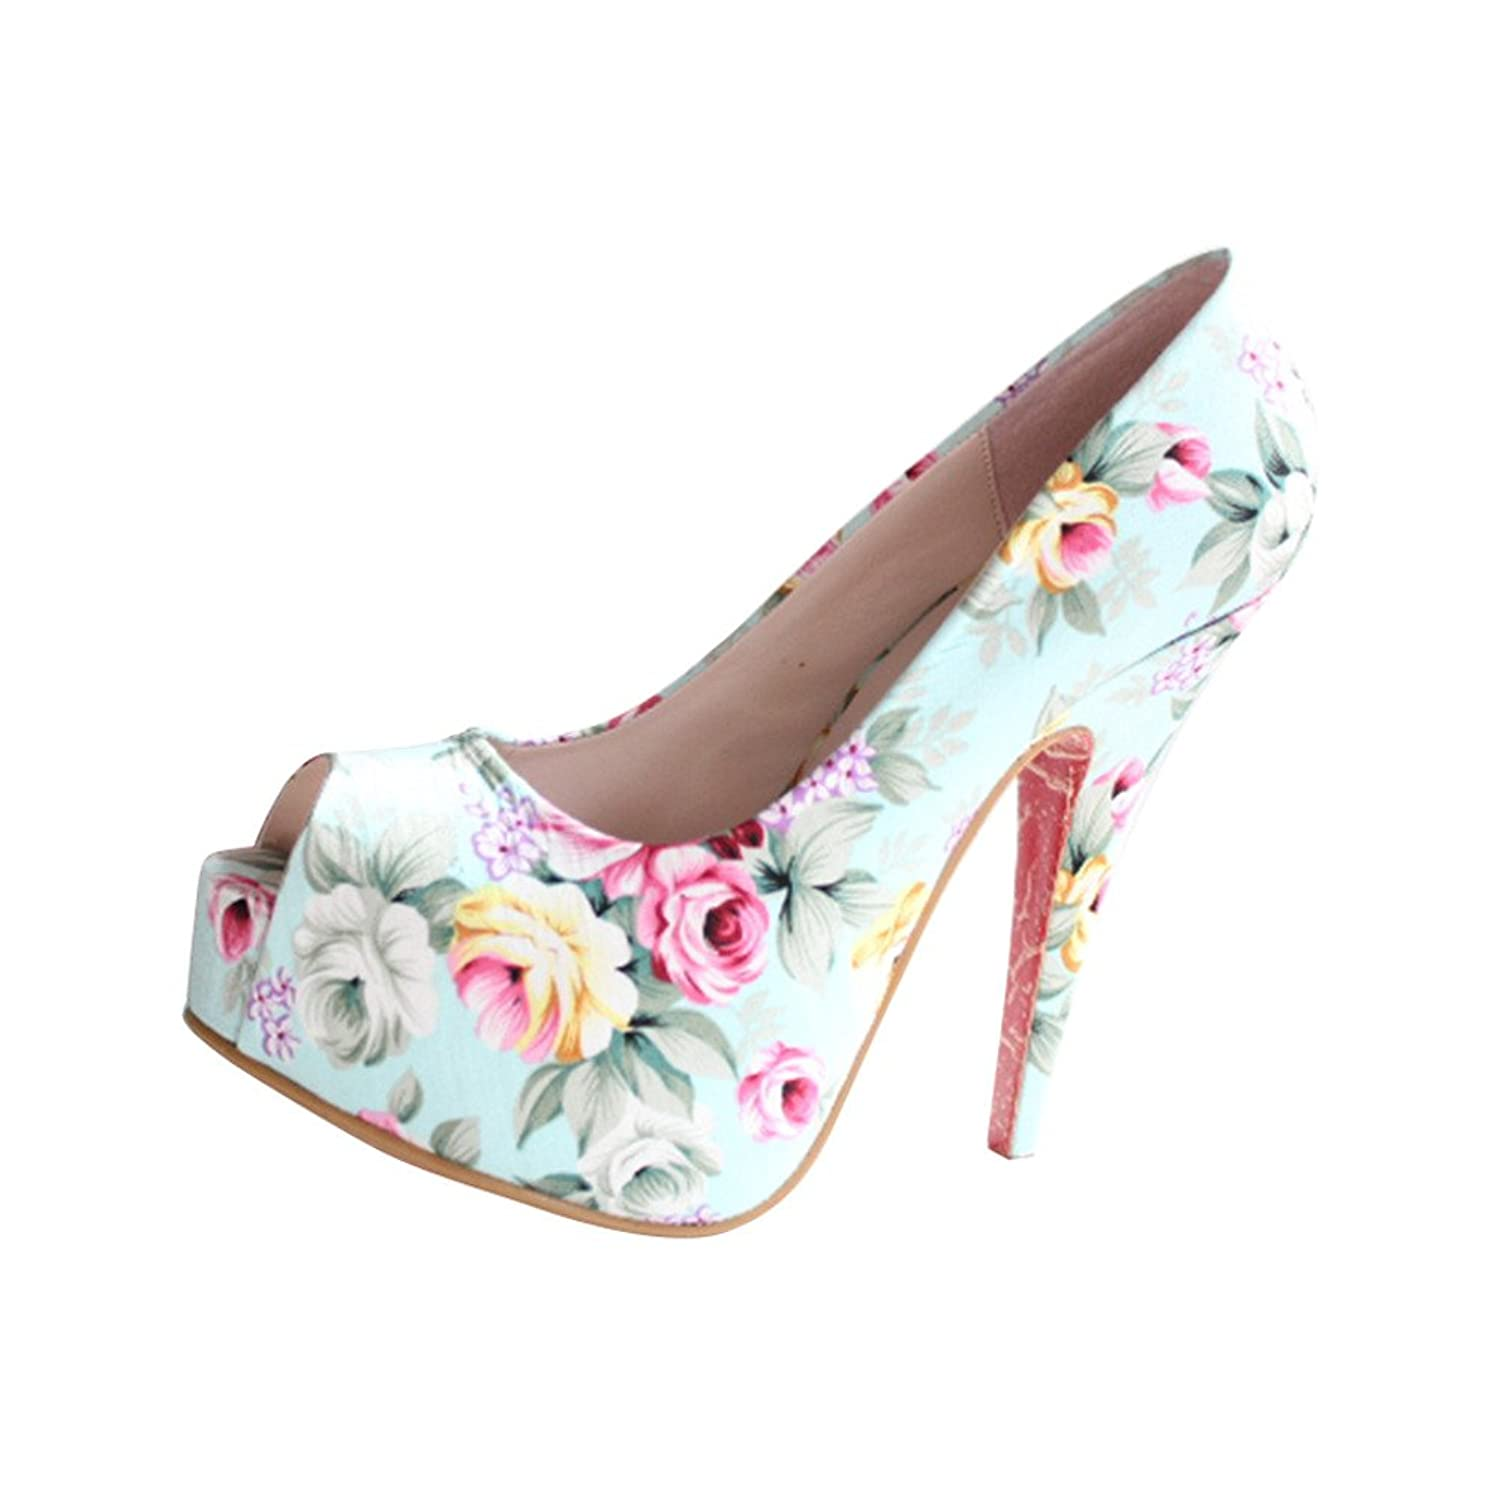 2016 Spring New Women's Retro Printing Peep Toe Platform Stiletto Pump